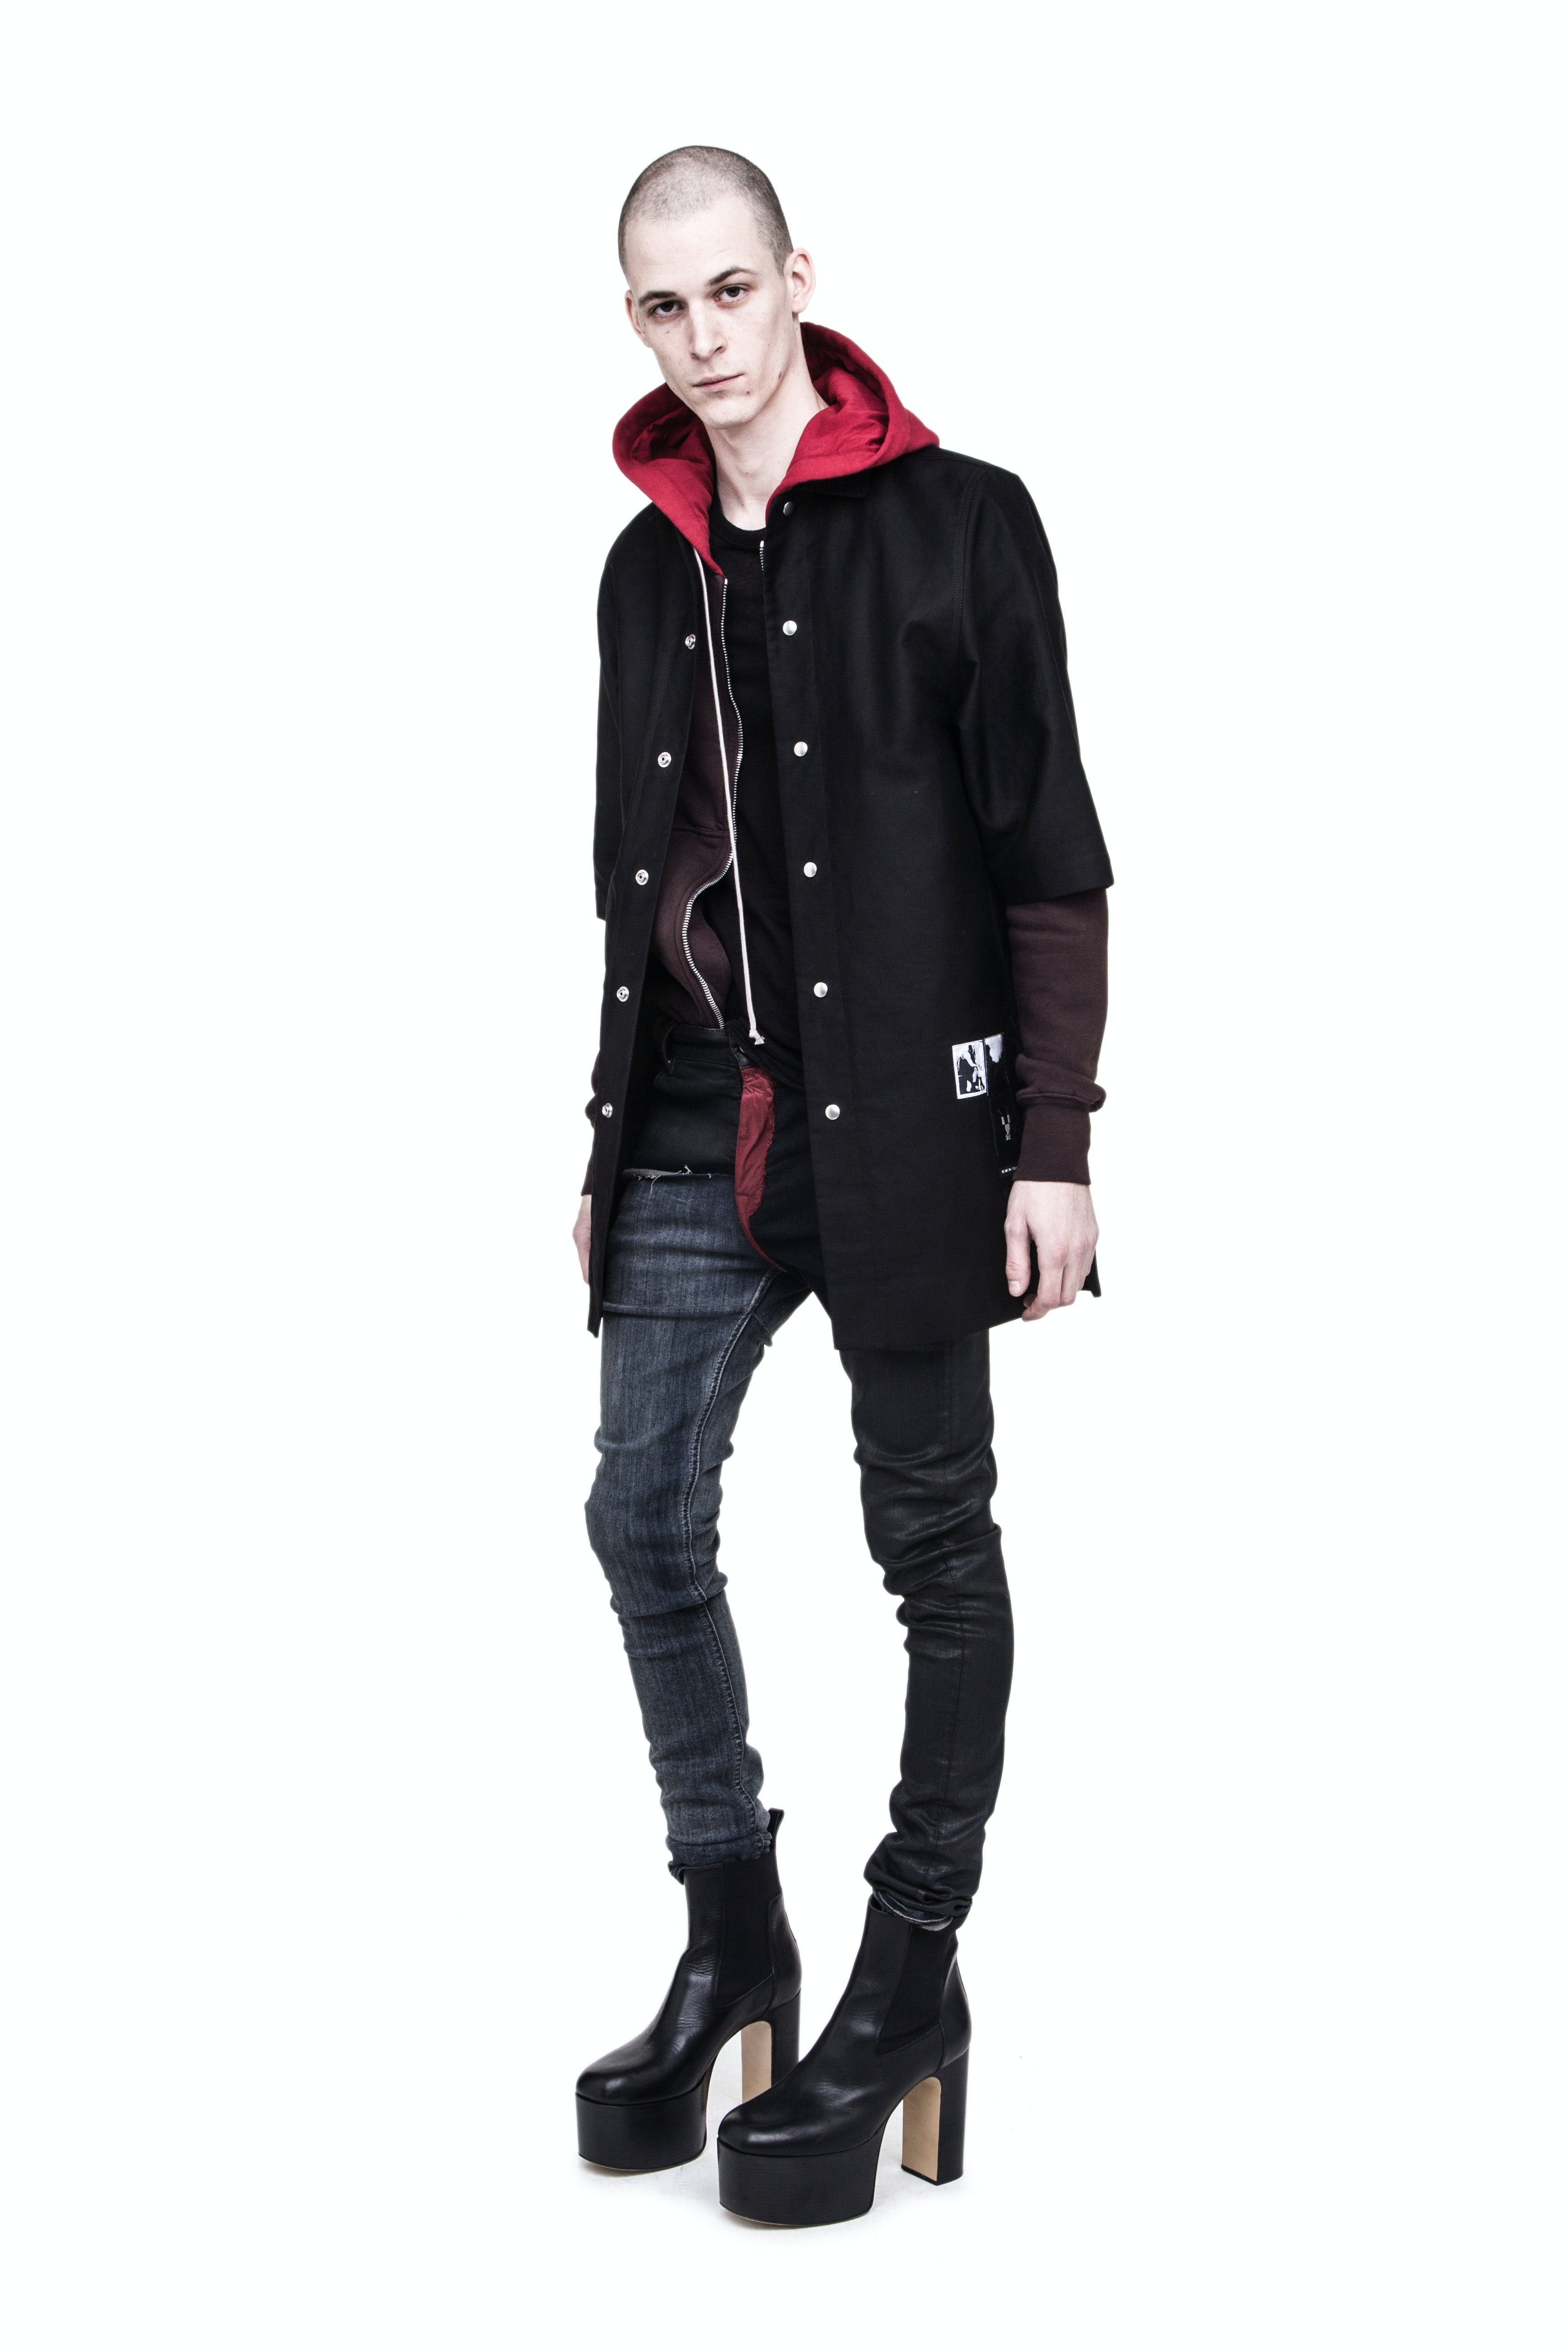 Rick Owens Campaign Snap Button DRKSHDW Shirt Jacket Red Zip Up Hoodie Tyrone Patch Work Jeans Mens SS19 Babel